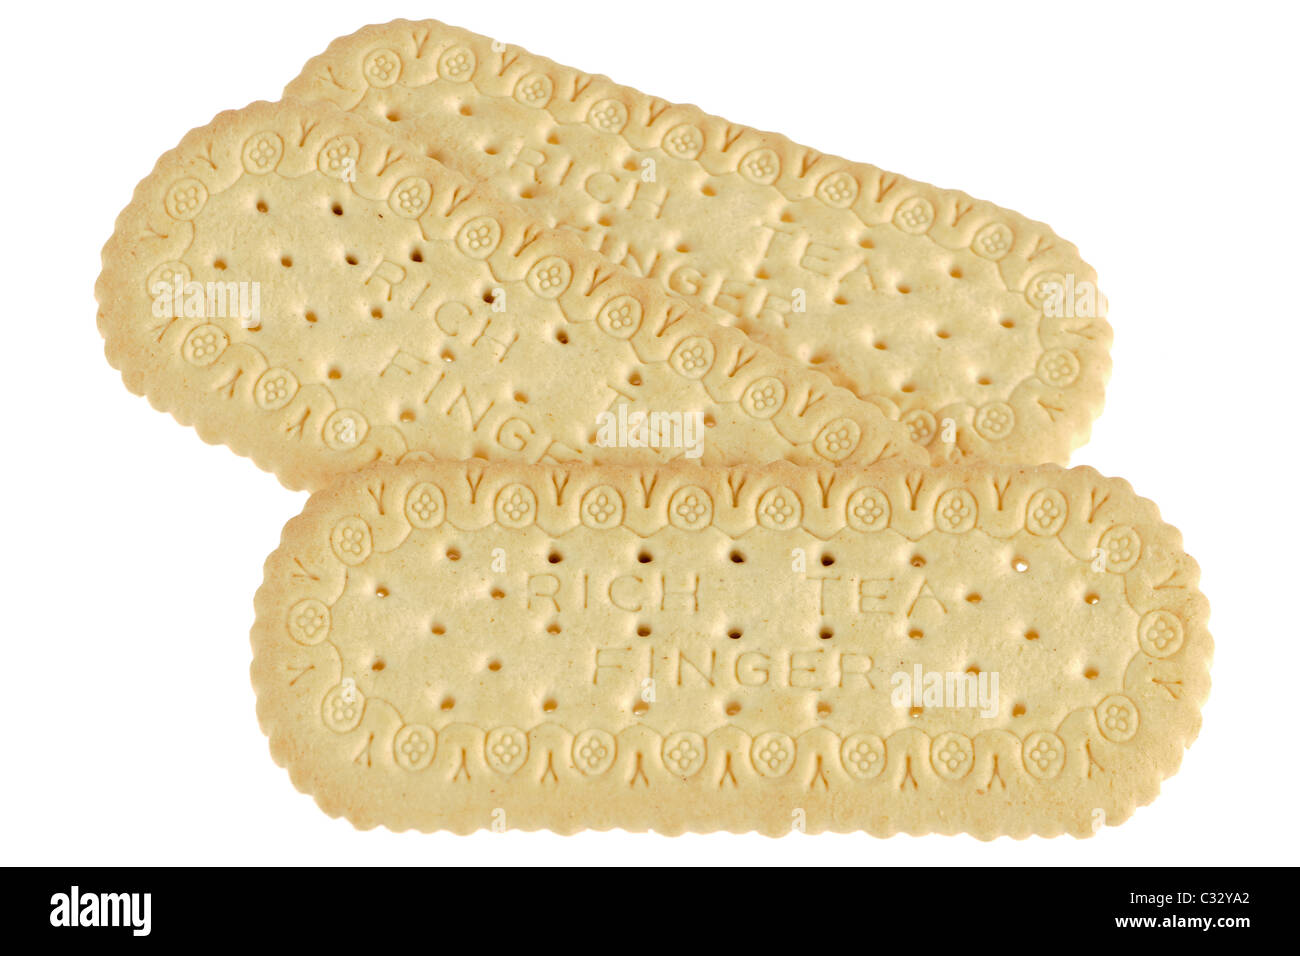 Three Rich Tea finger biscuits - Stock Image